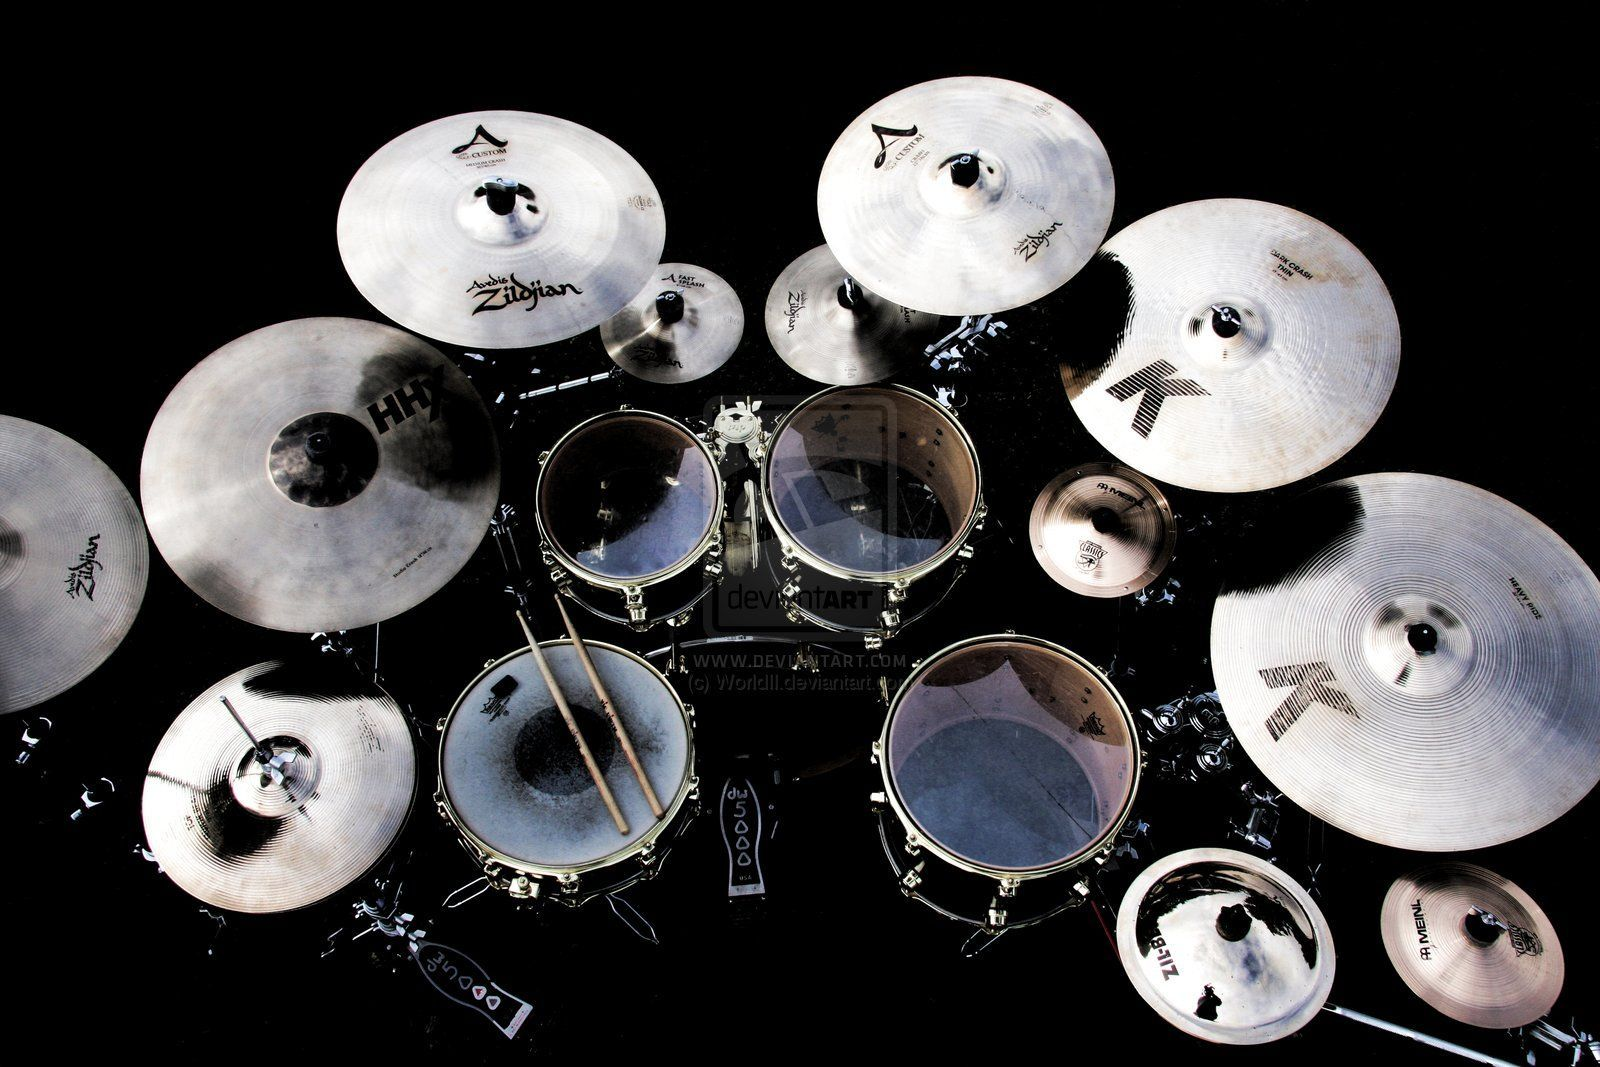 black drum set musical instrument widescreen computer background 1219